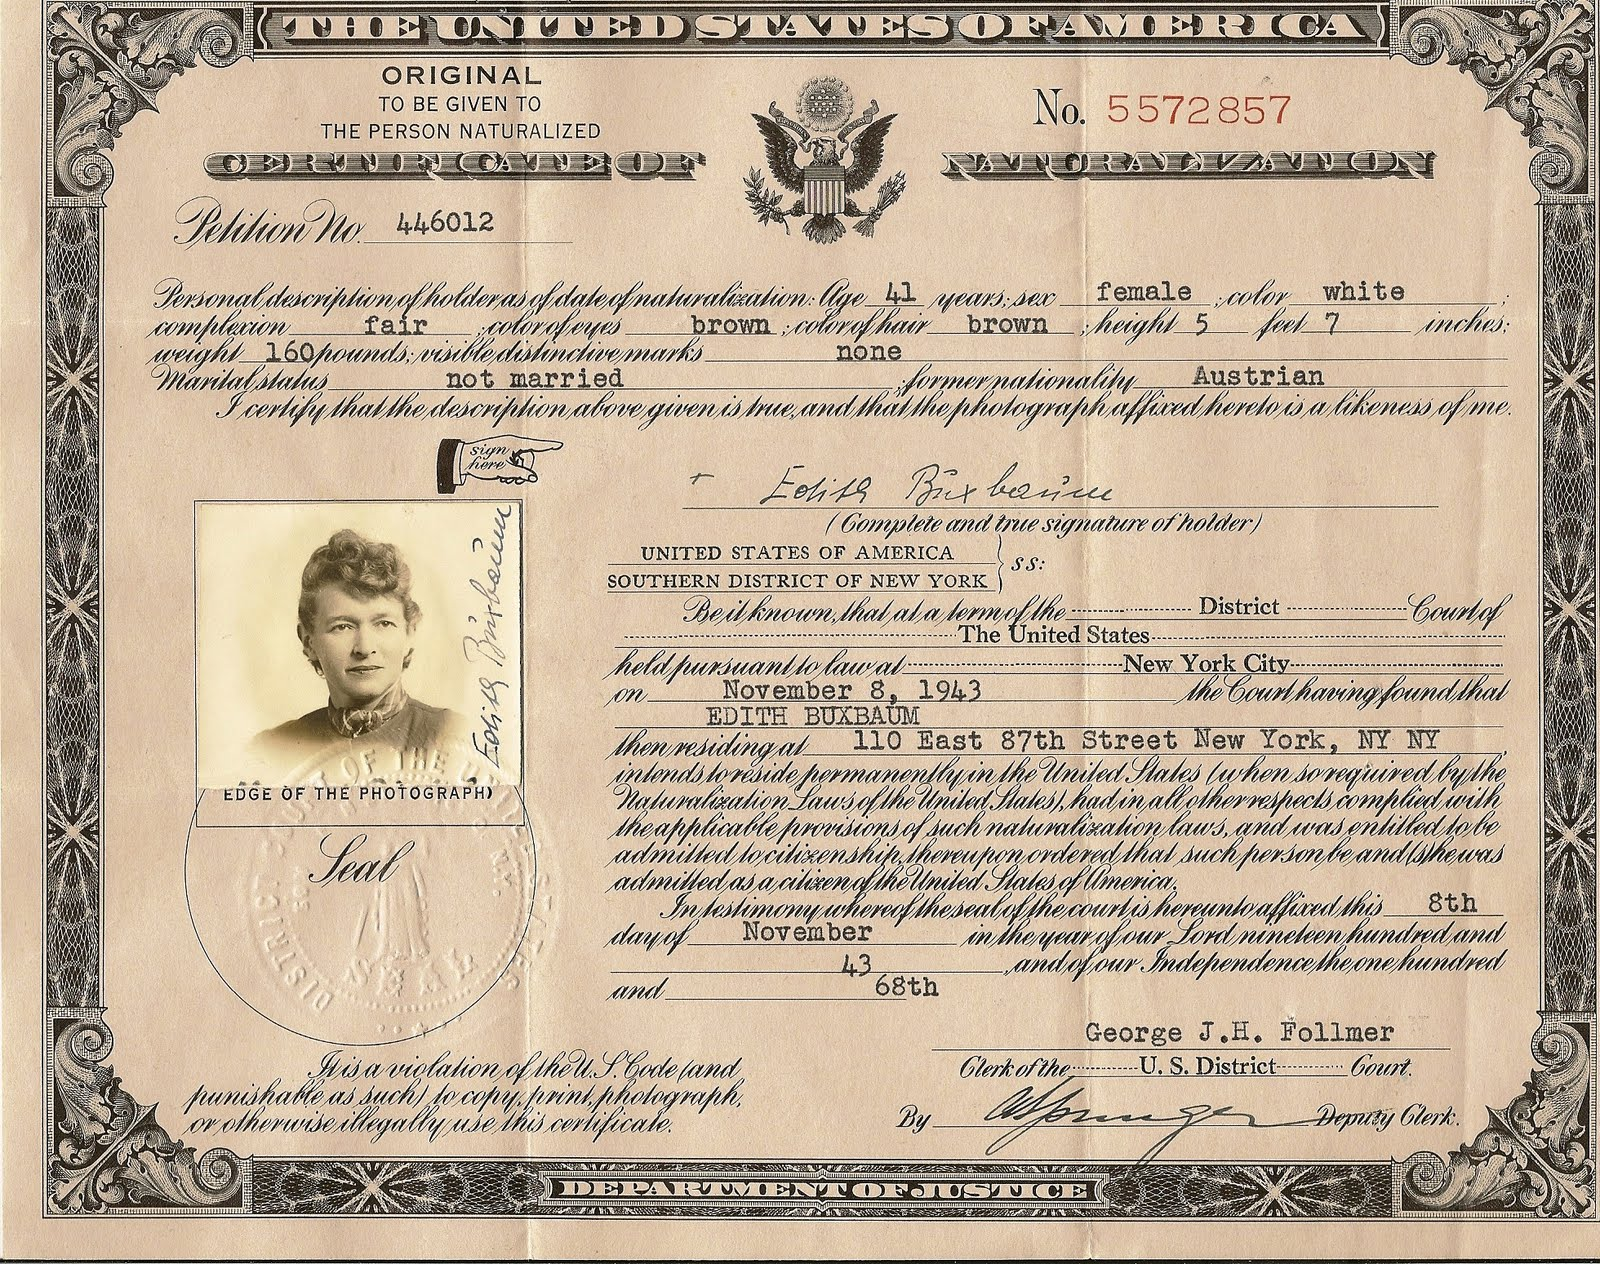 Edith buxbaum phd 1902 1982 she led with her mind edith buxbaum phd 1902 1982 she led with her mind naturalization certificates ny addresses margaret mahler a drivers license xflitez Choice Image